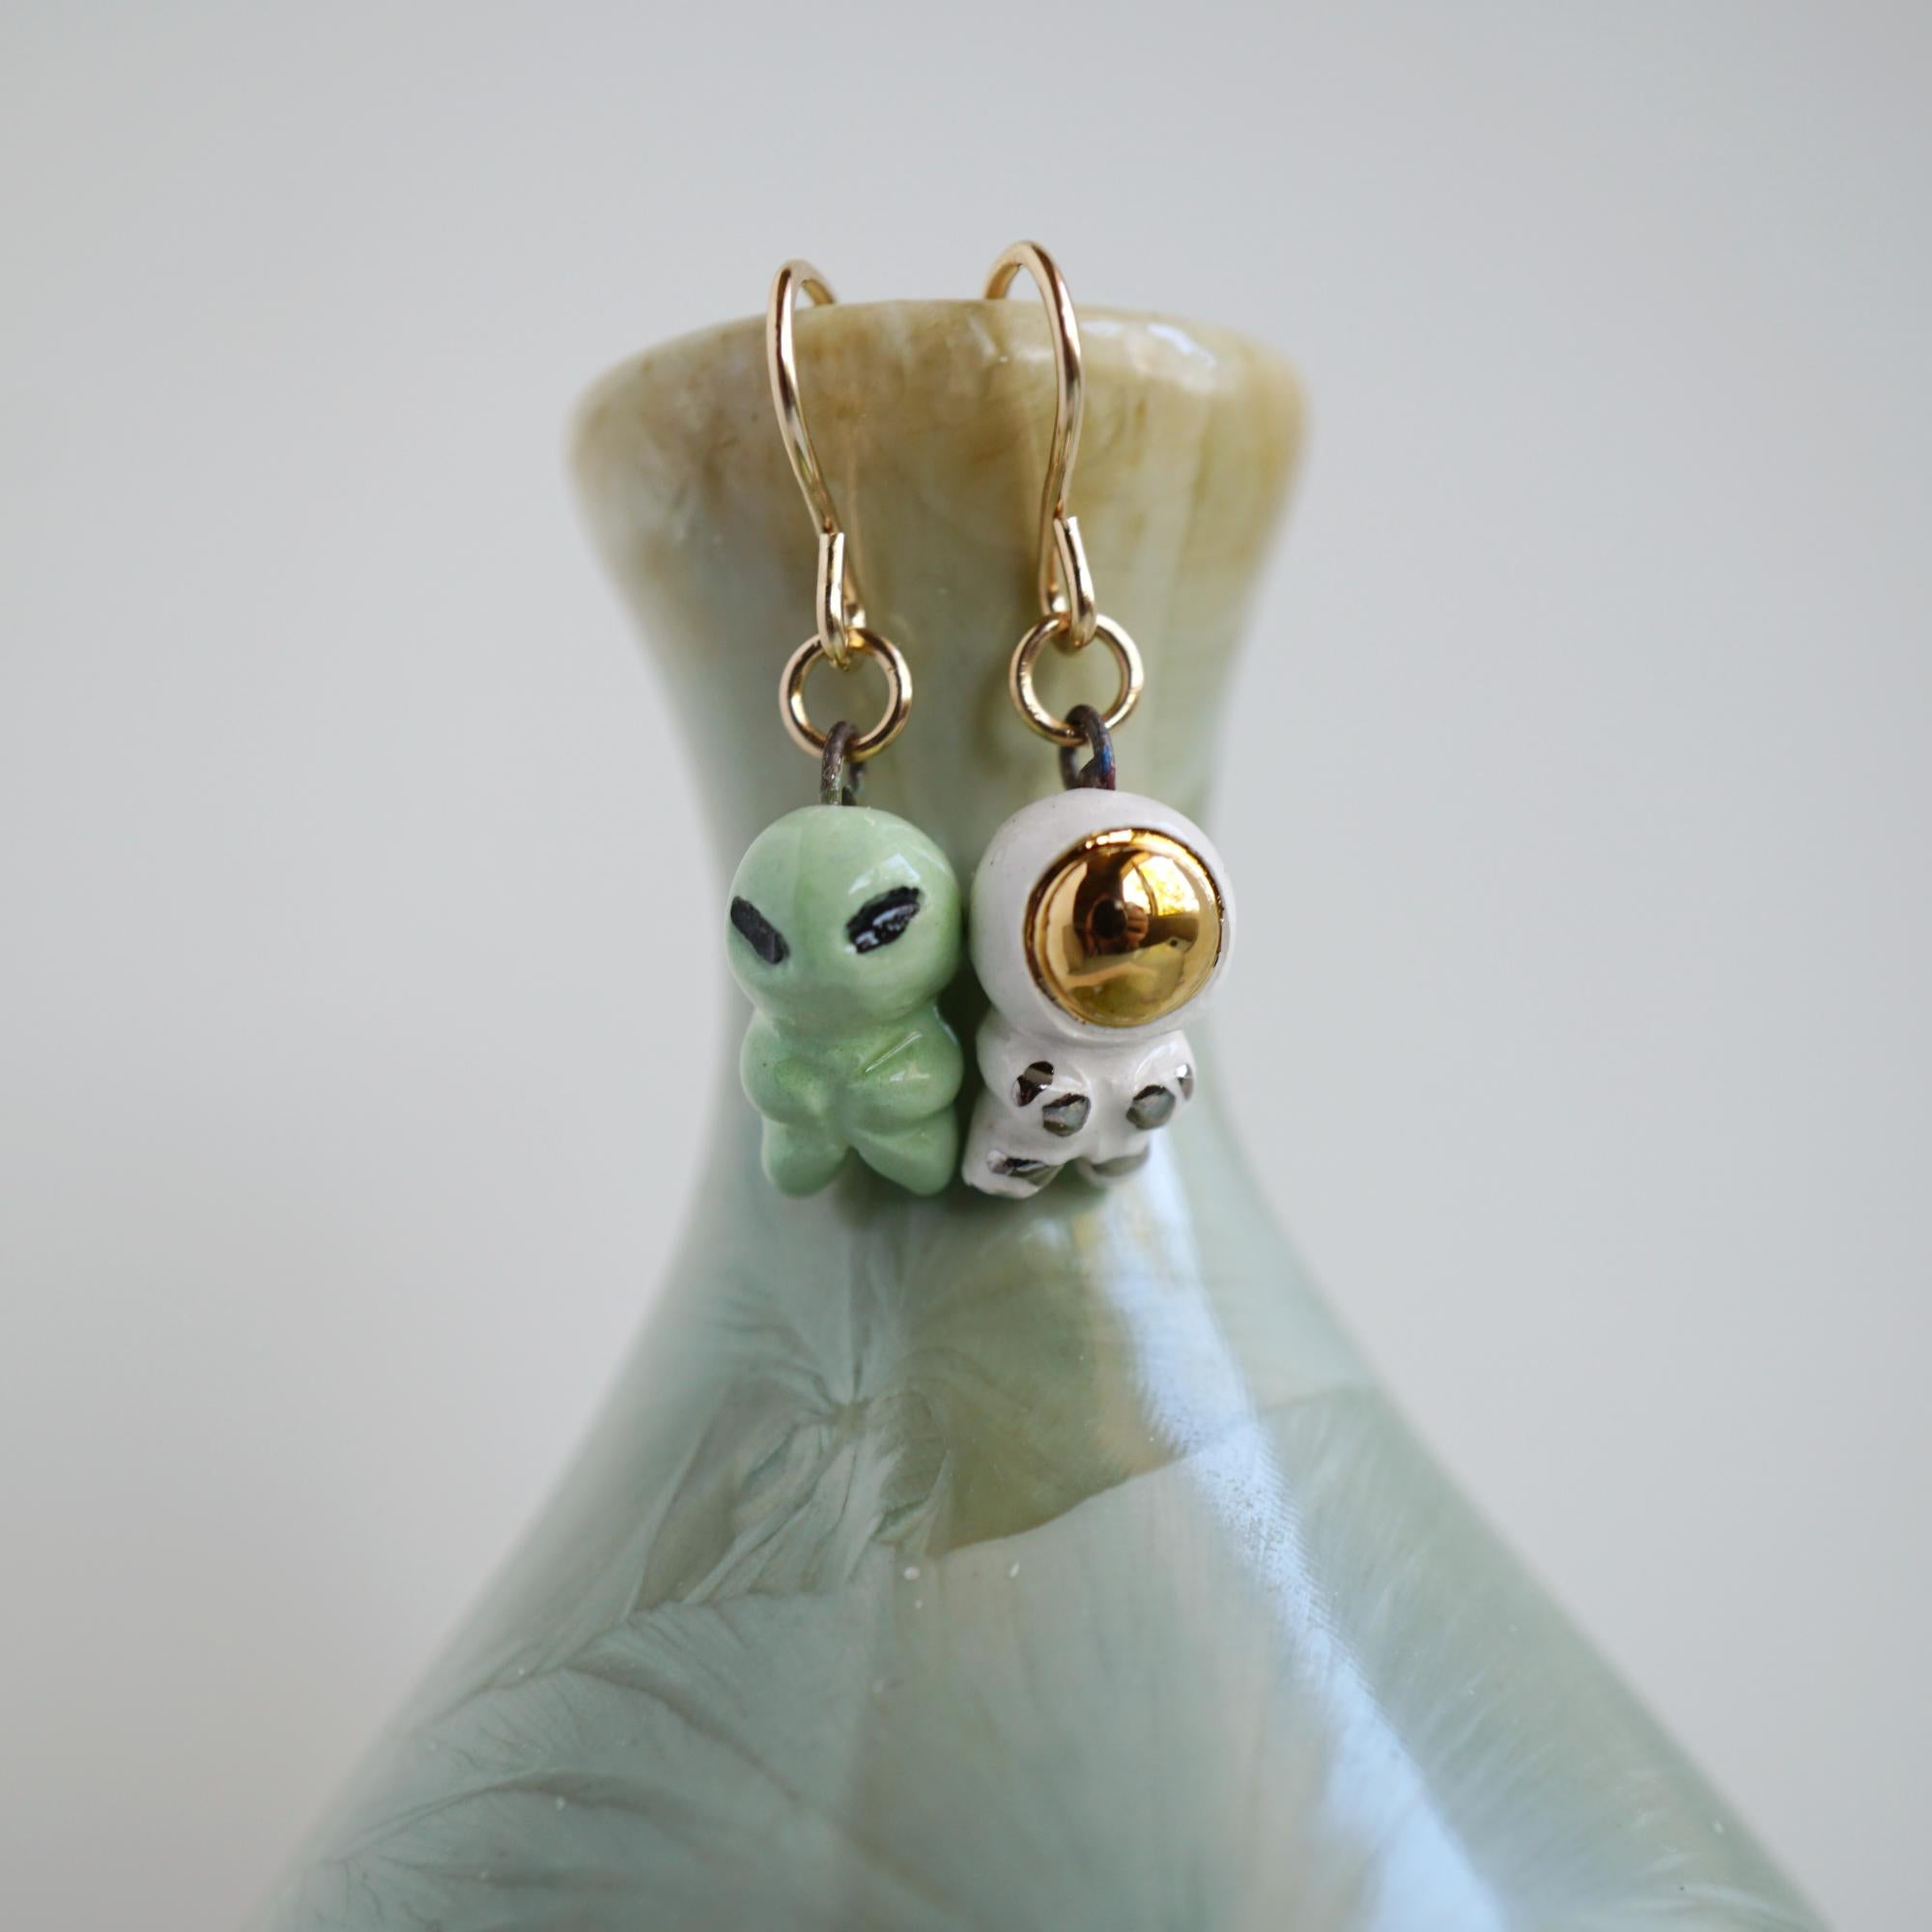 Astronaut and Alien Earrings